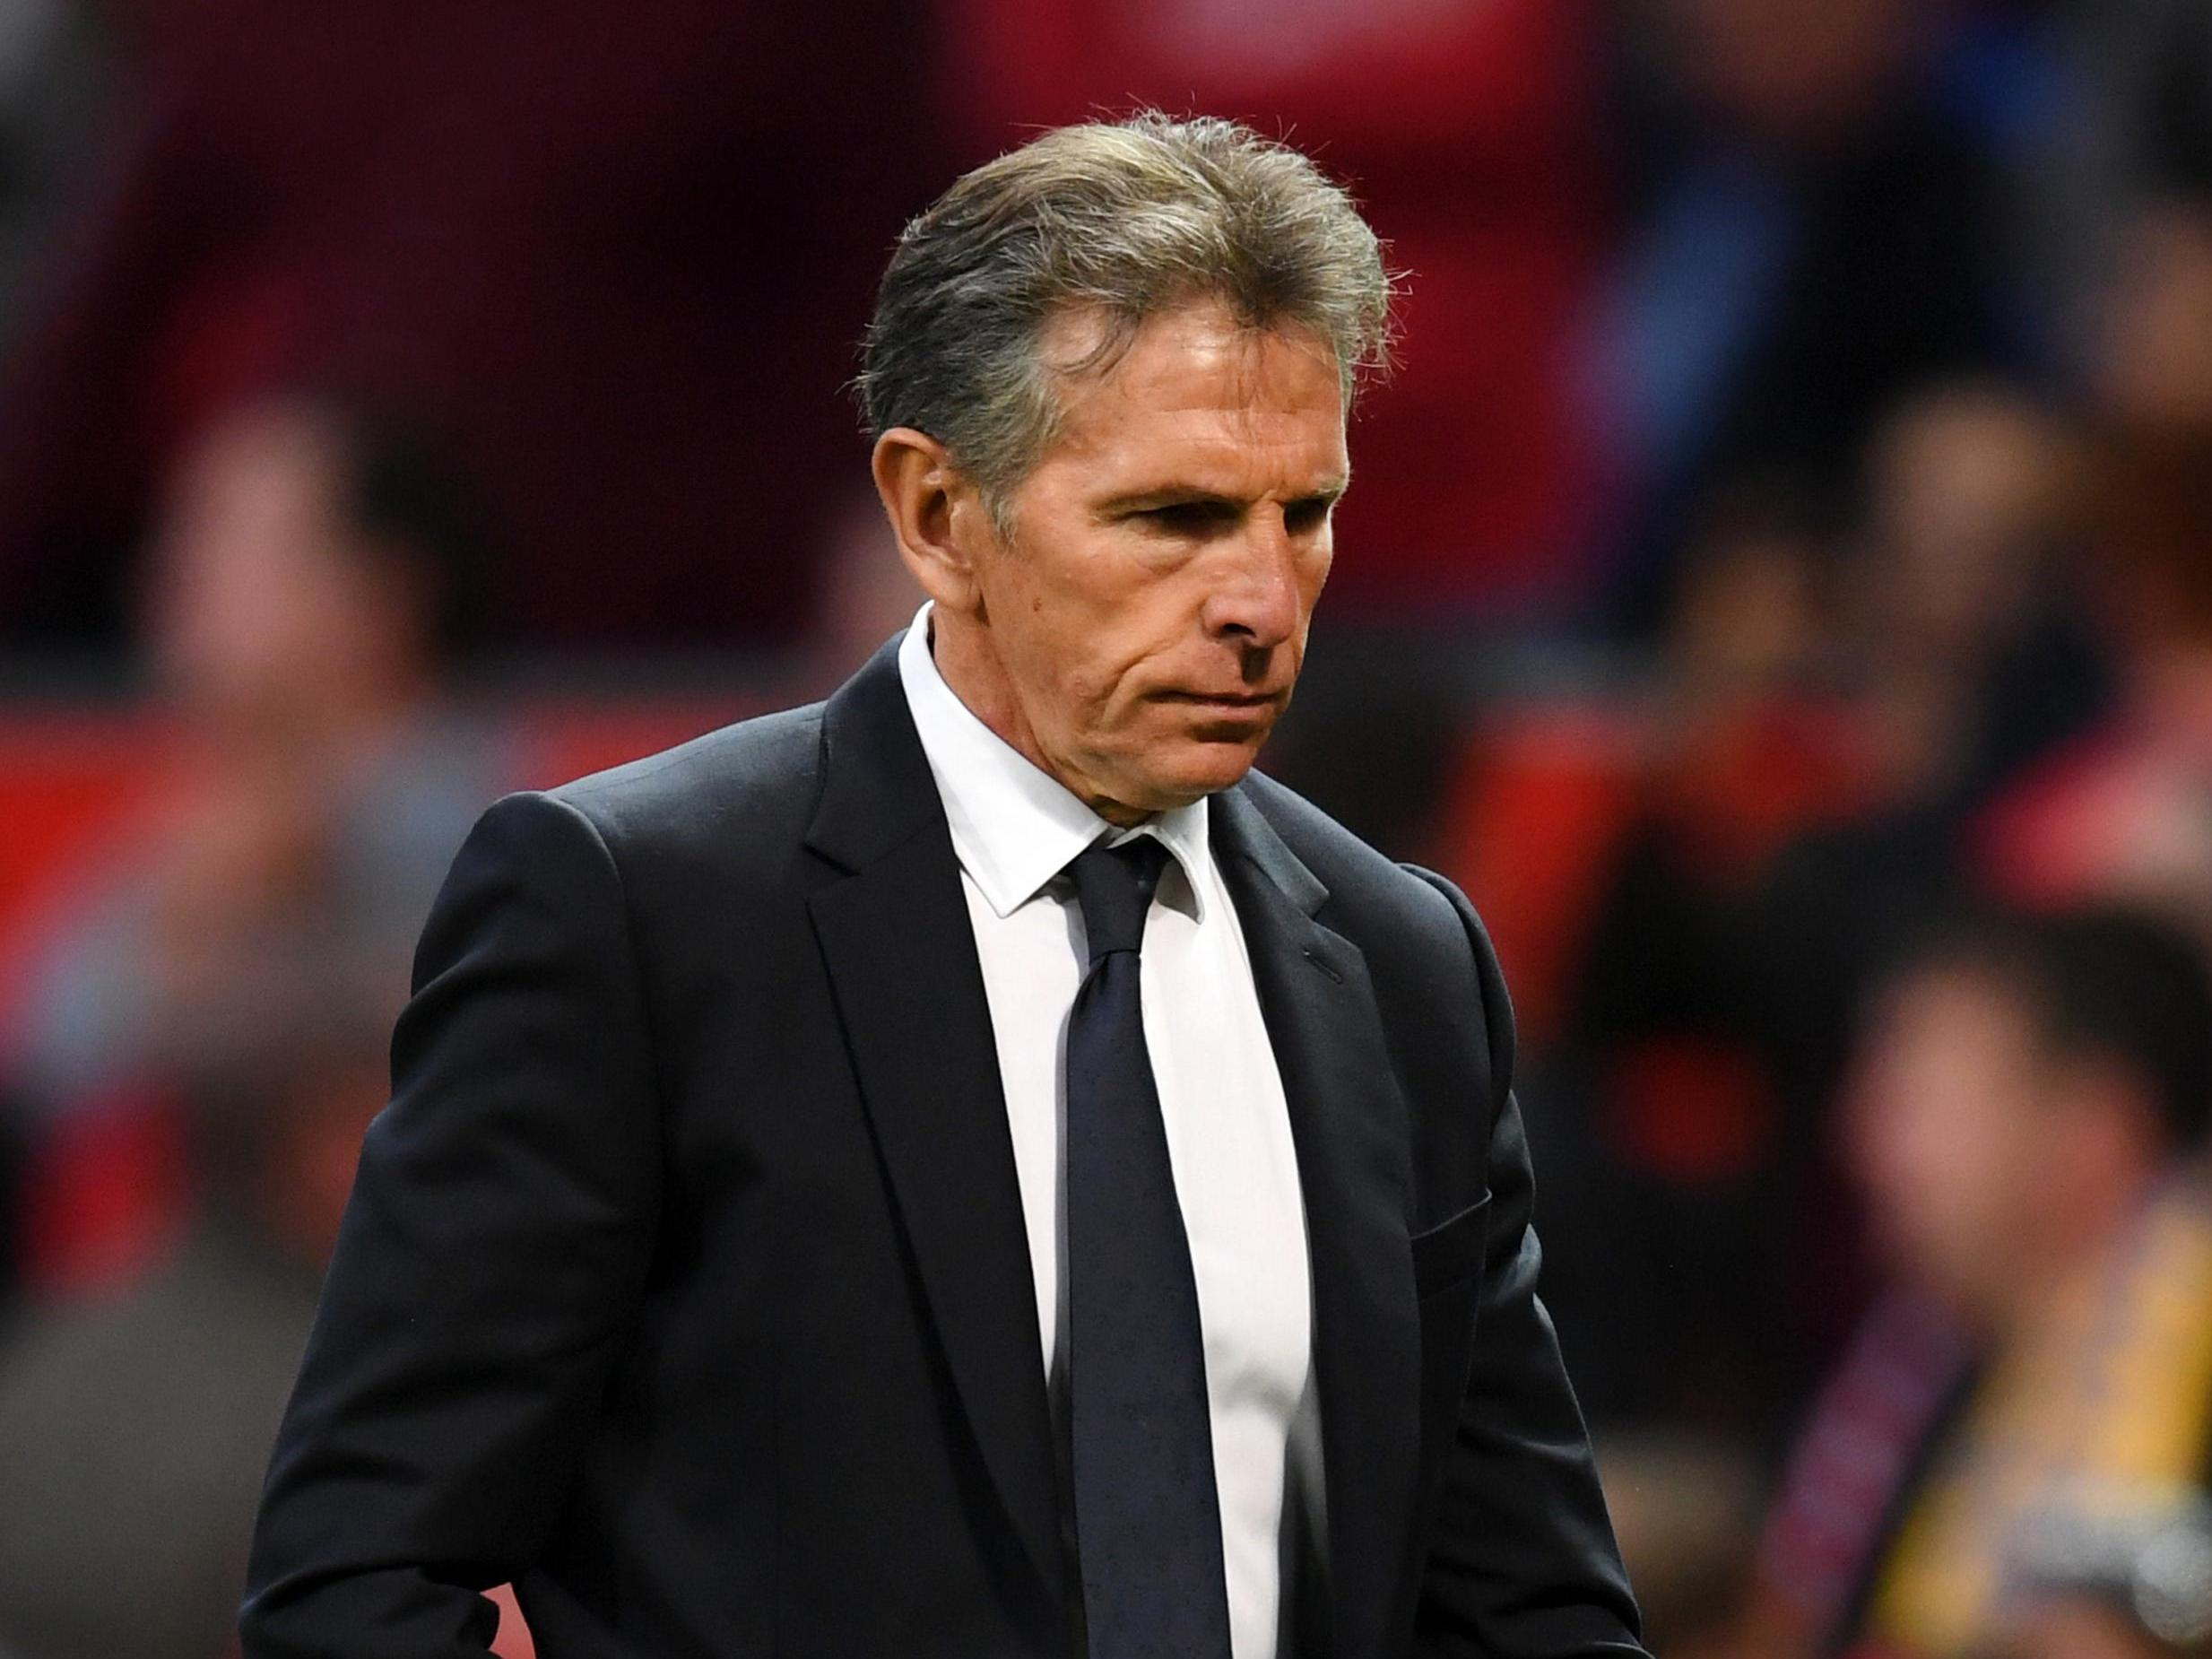 Leicester manager Claude Puel laughs off speculation he is under pressure after just one Premier League game